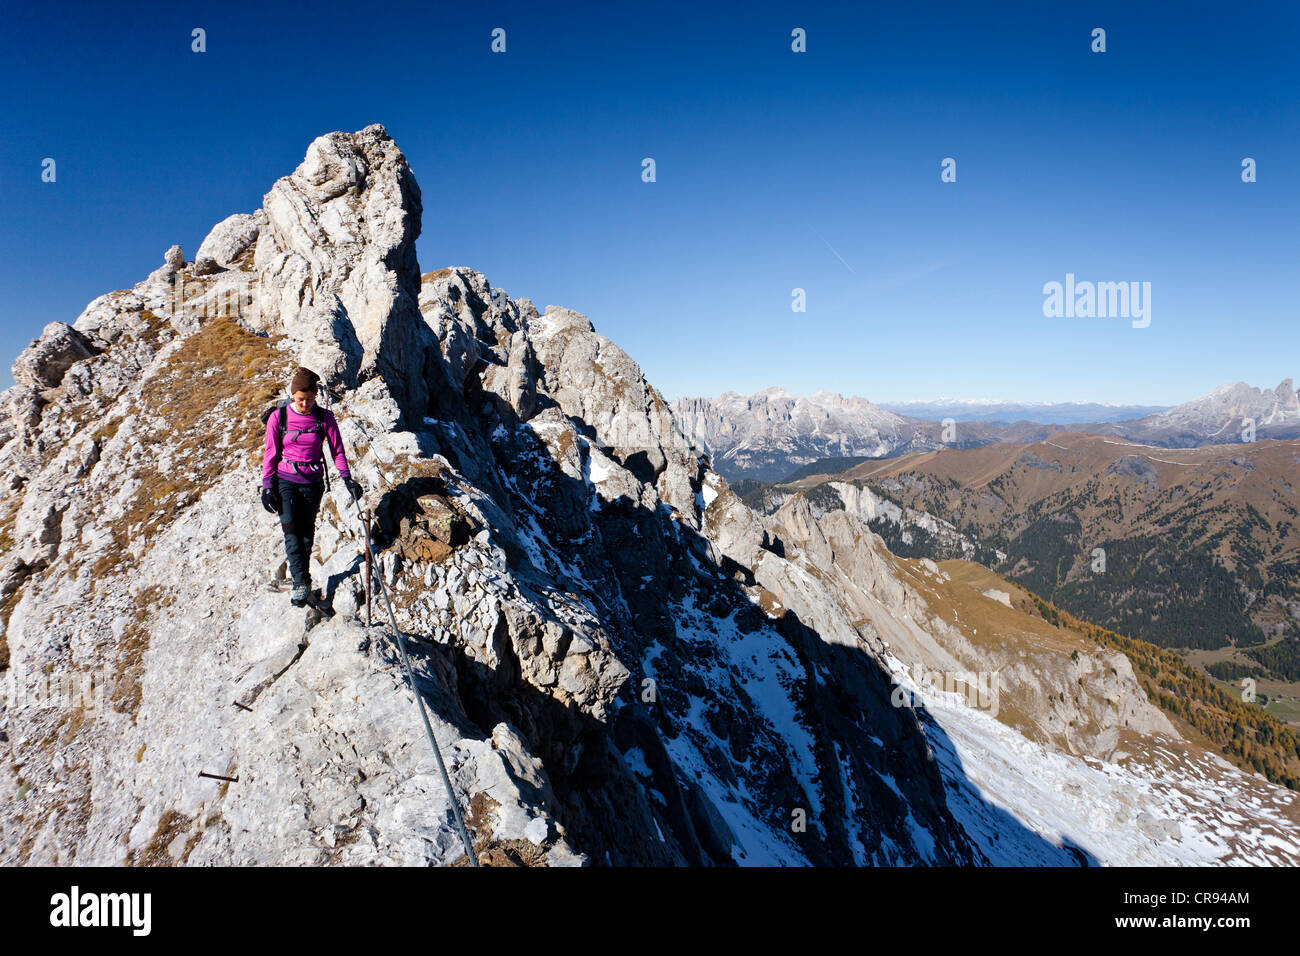 Hiker on Bepi Zac climbing route in the San Pellegrino Valley above the San Pellegrino Pass, with the Dolomites Stock Photo